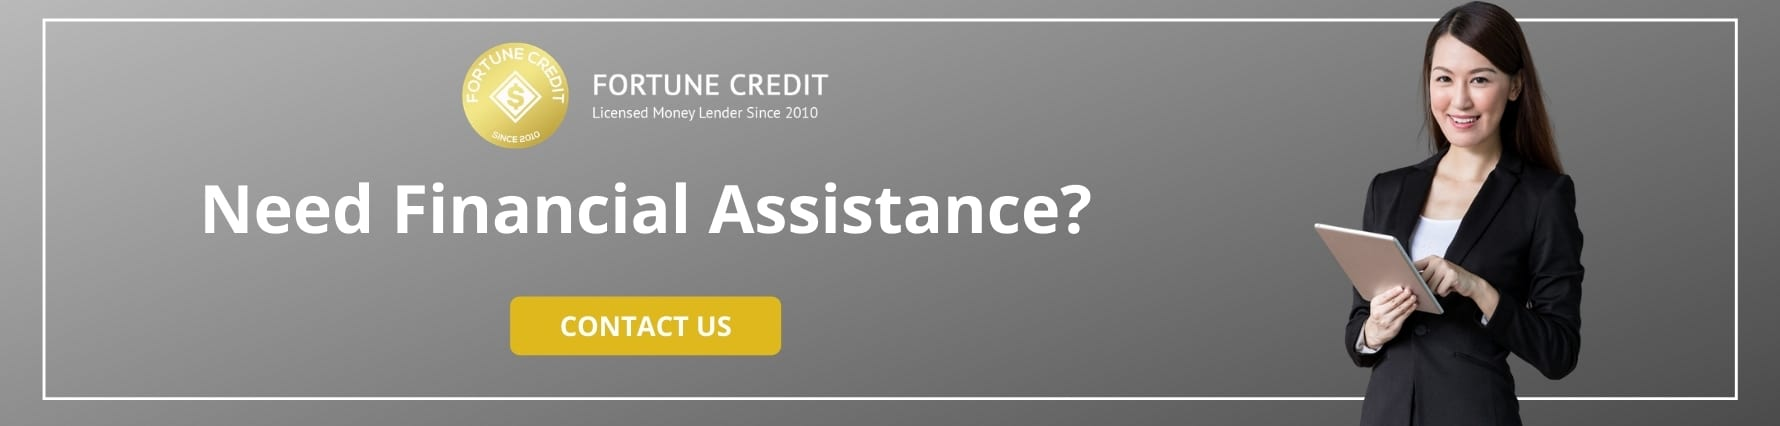 Need Financial Assistance?